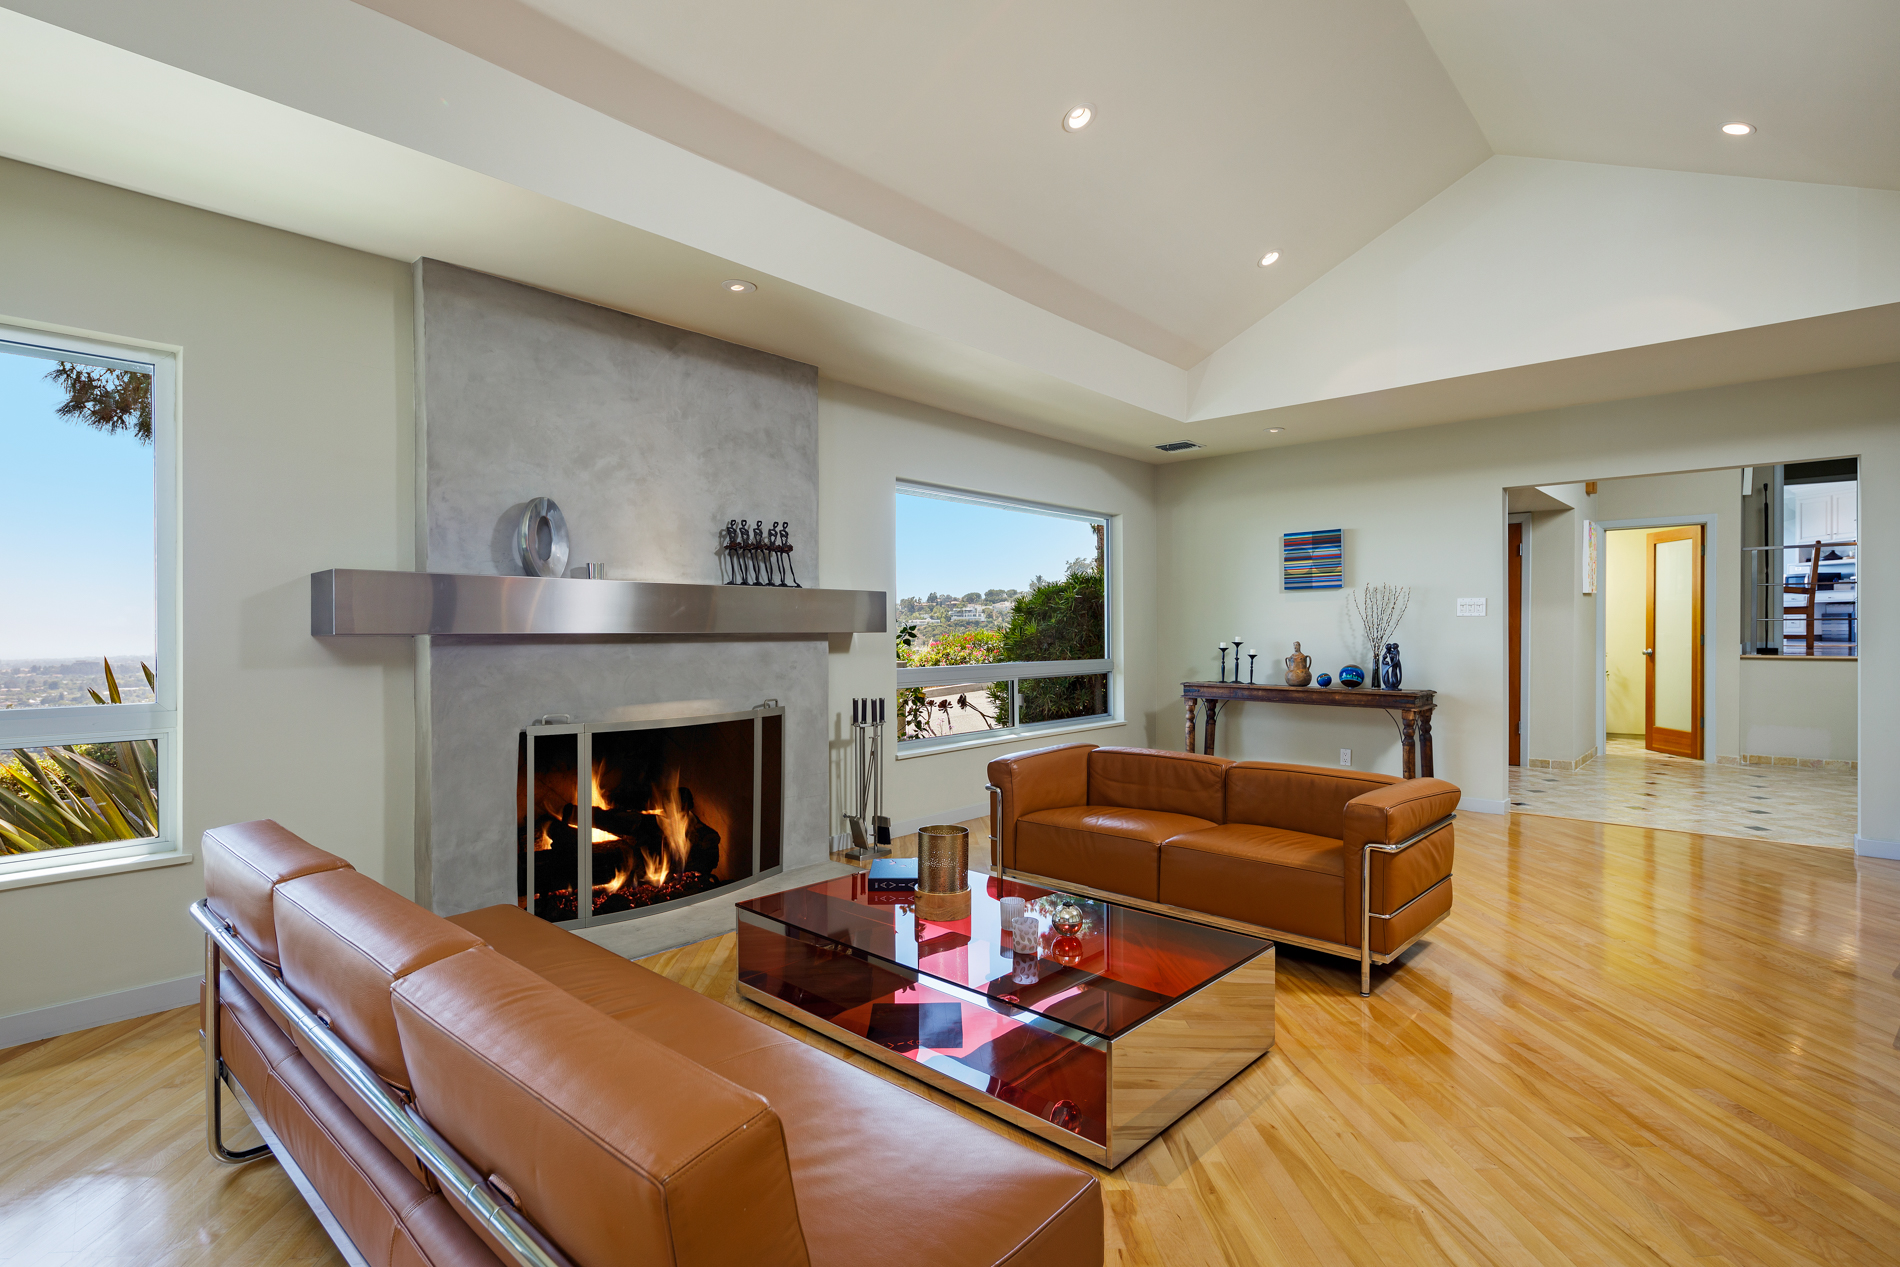 recessed lighting in the living room of a beverly hills luxury home